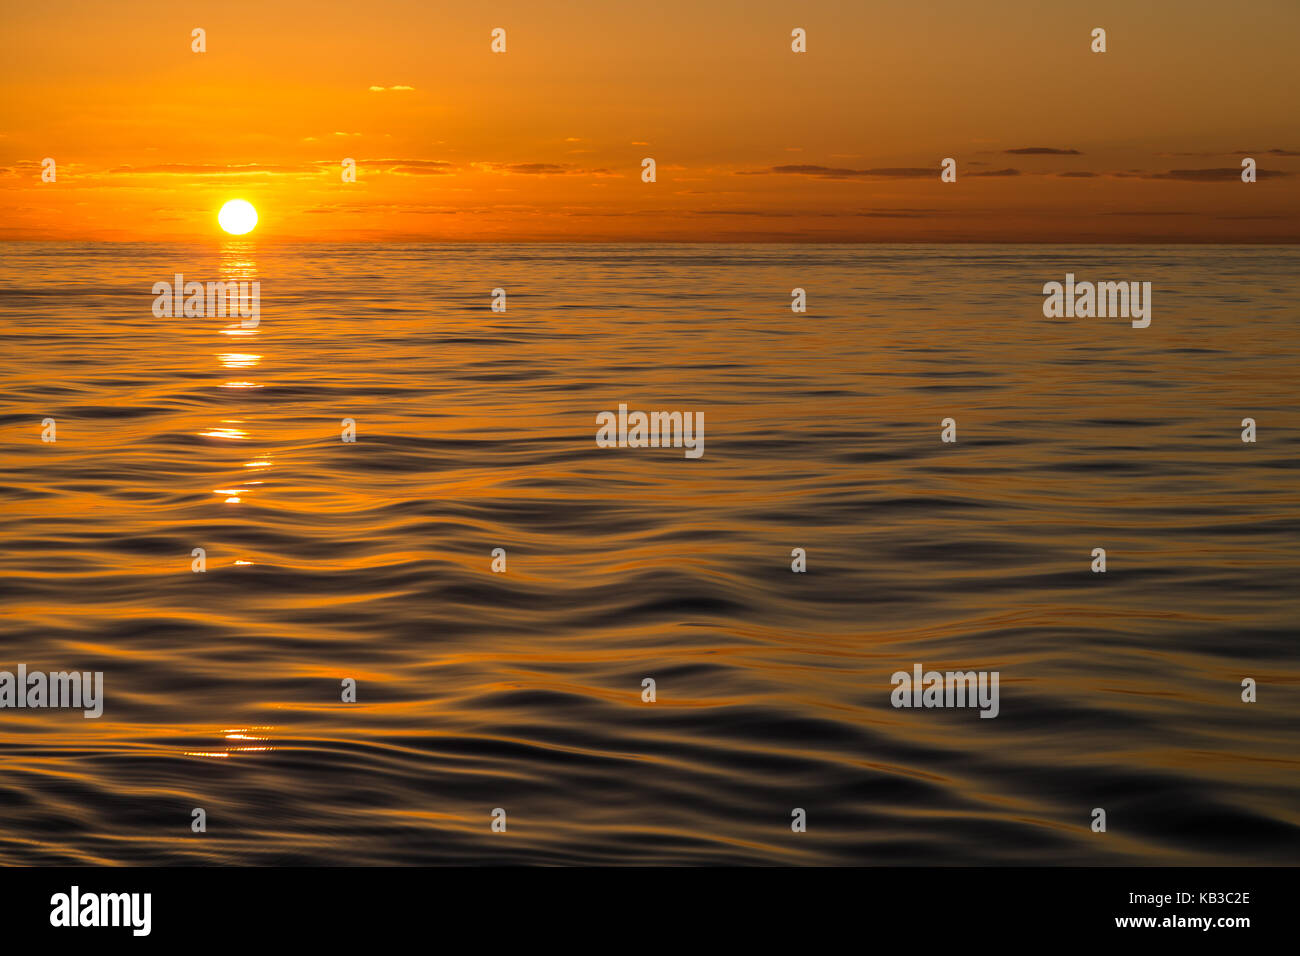 Sunset on the Bay of Biscay - Stock Image